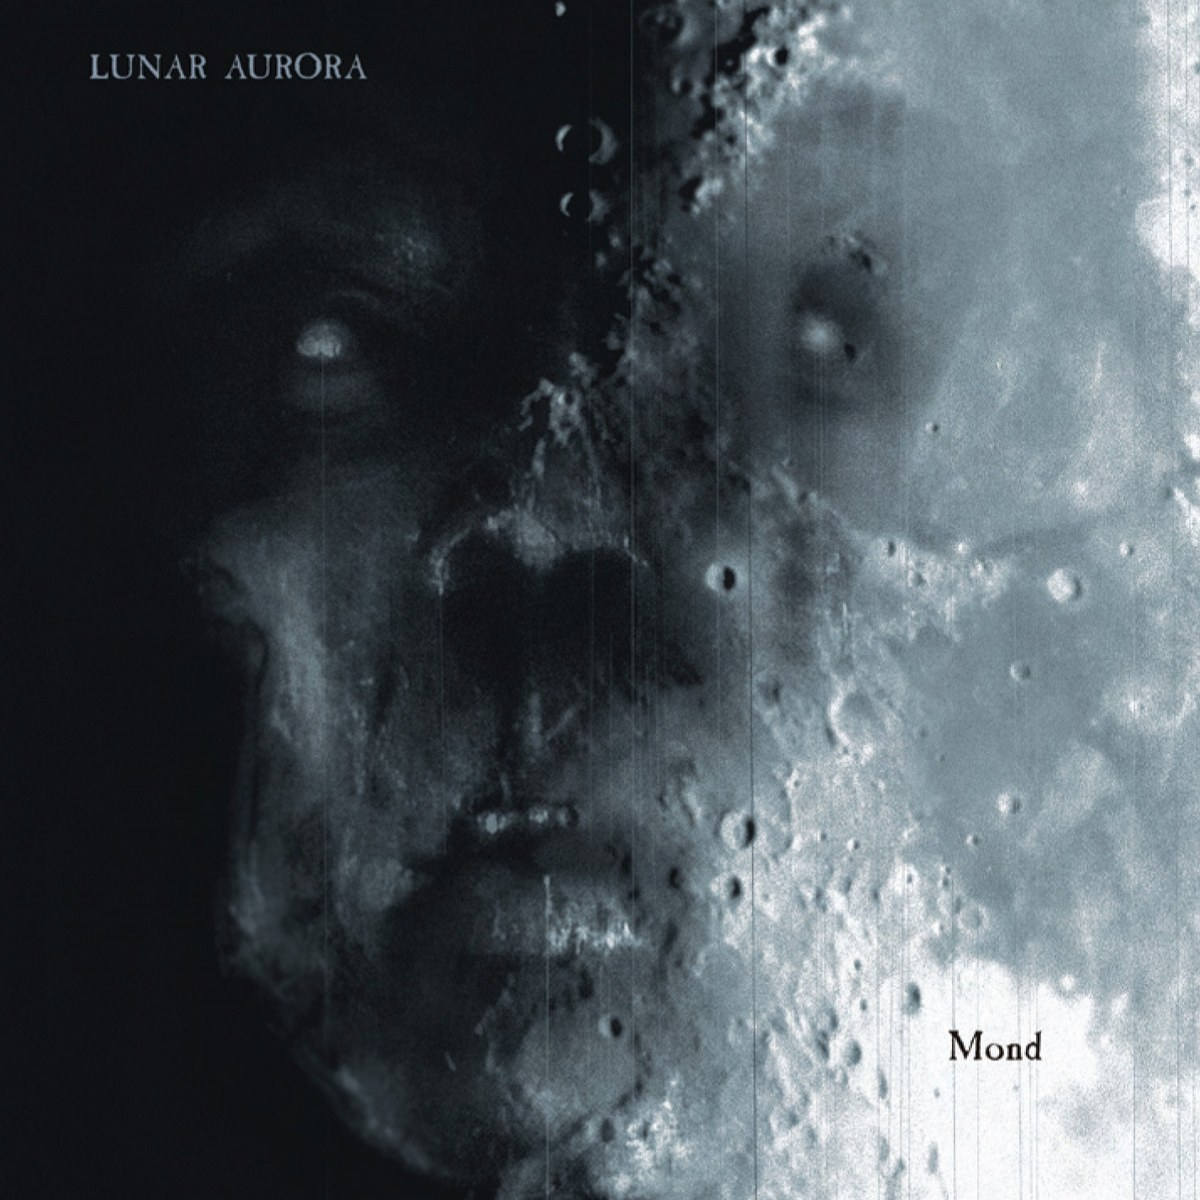 Review for Lunar Aurora - Mond